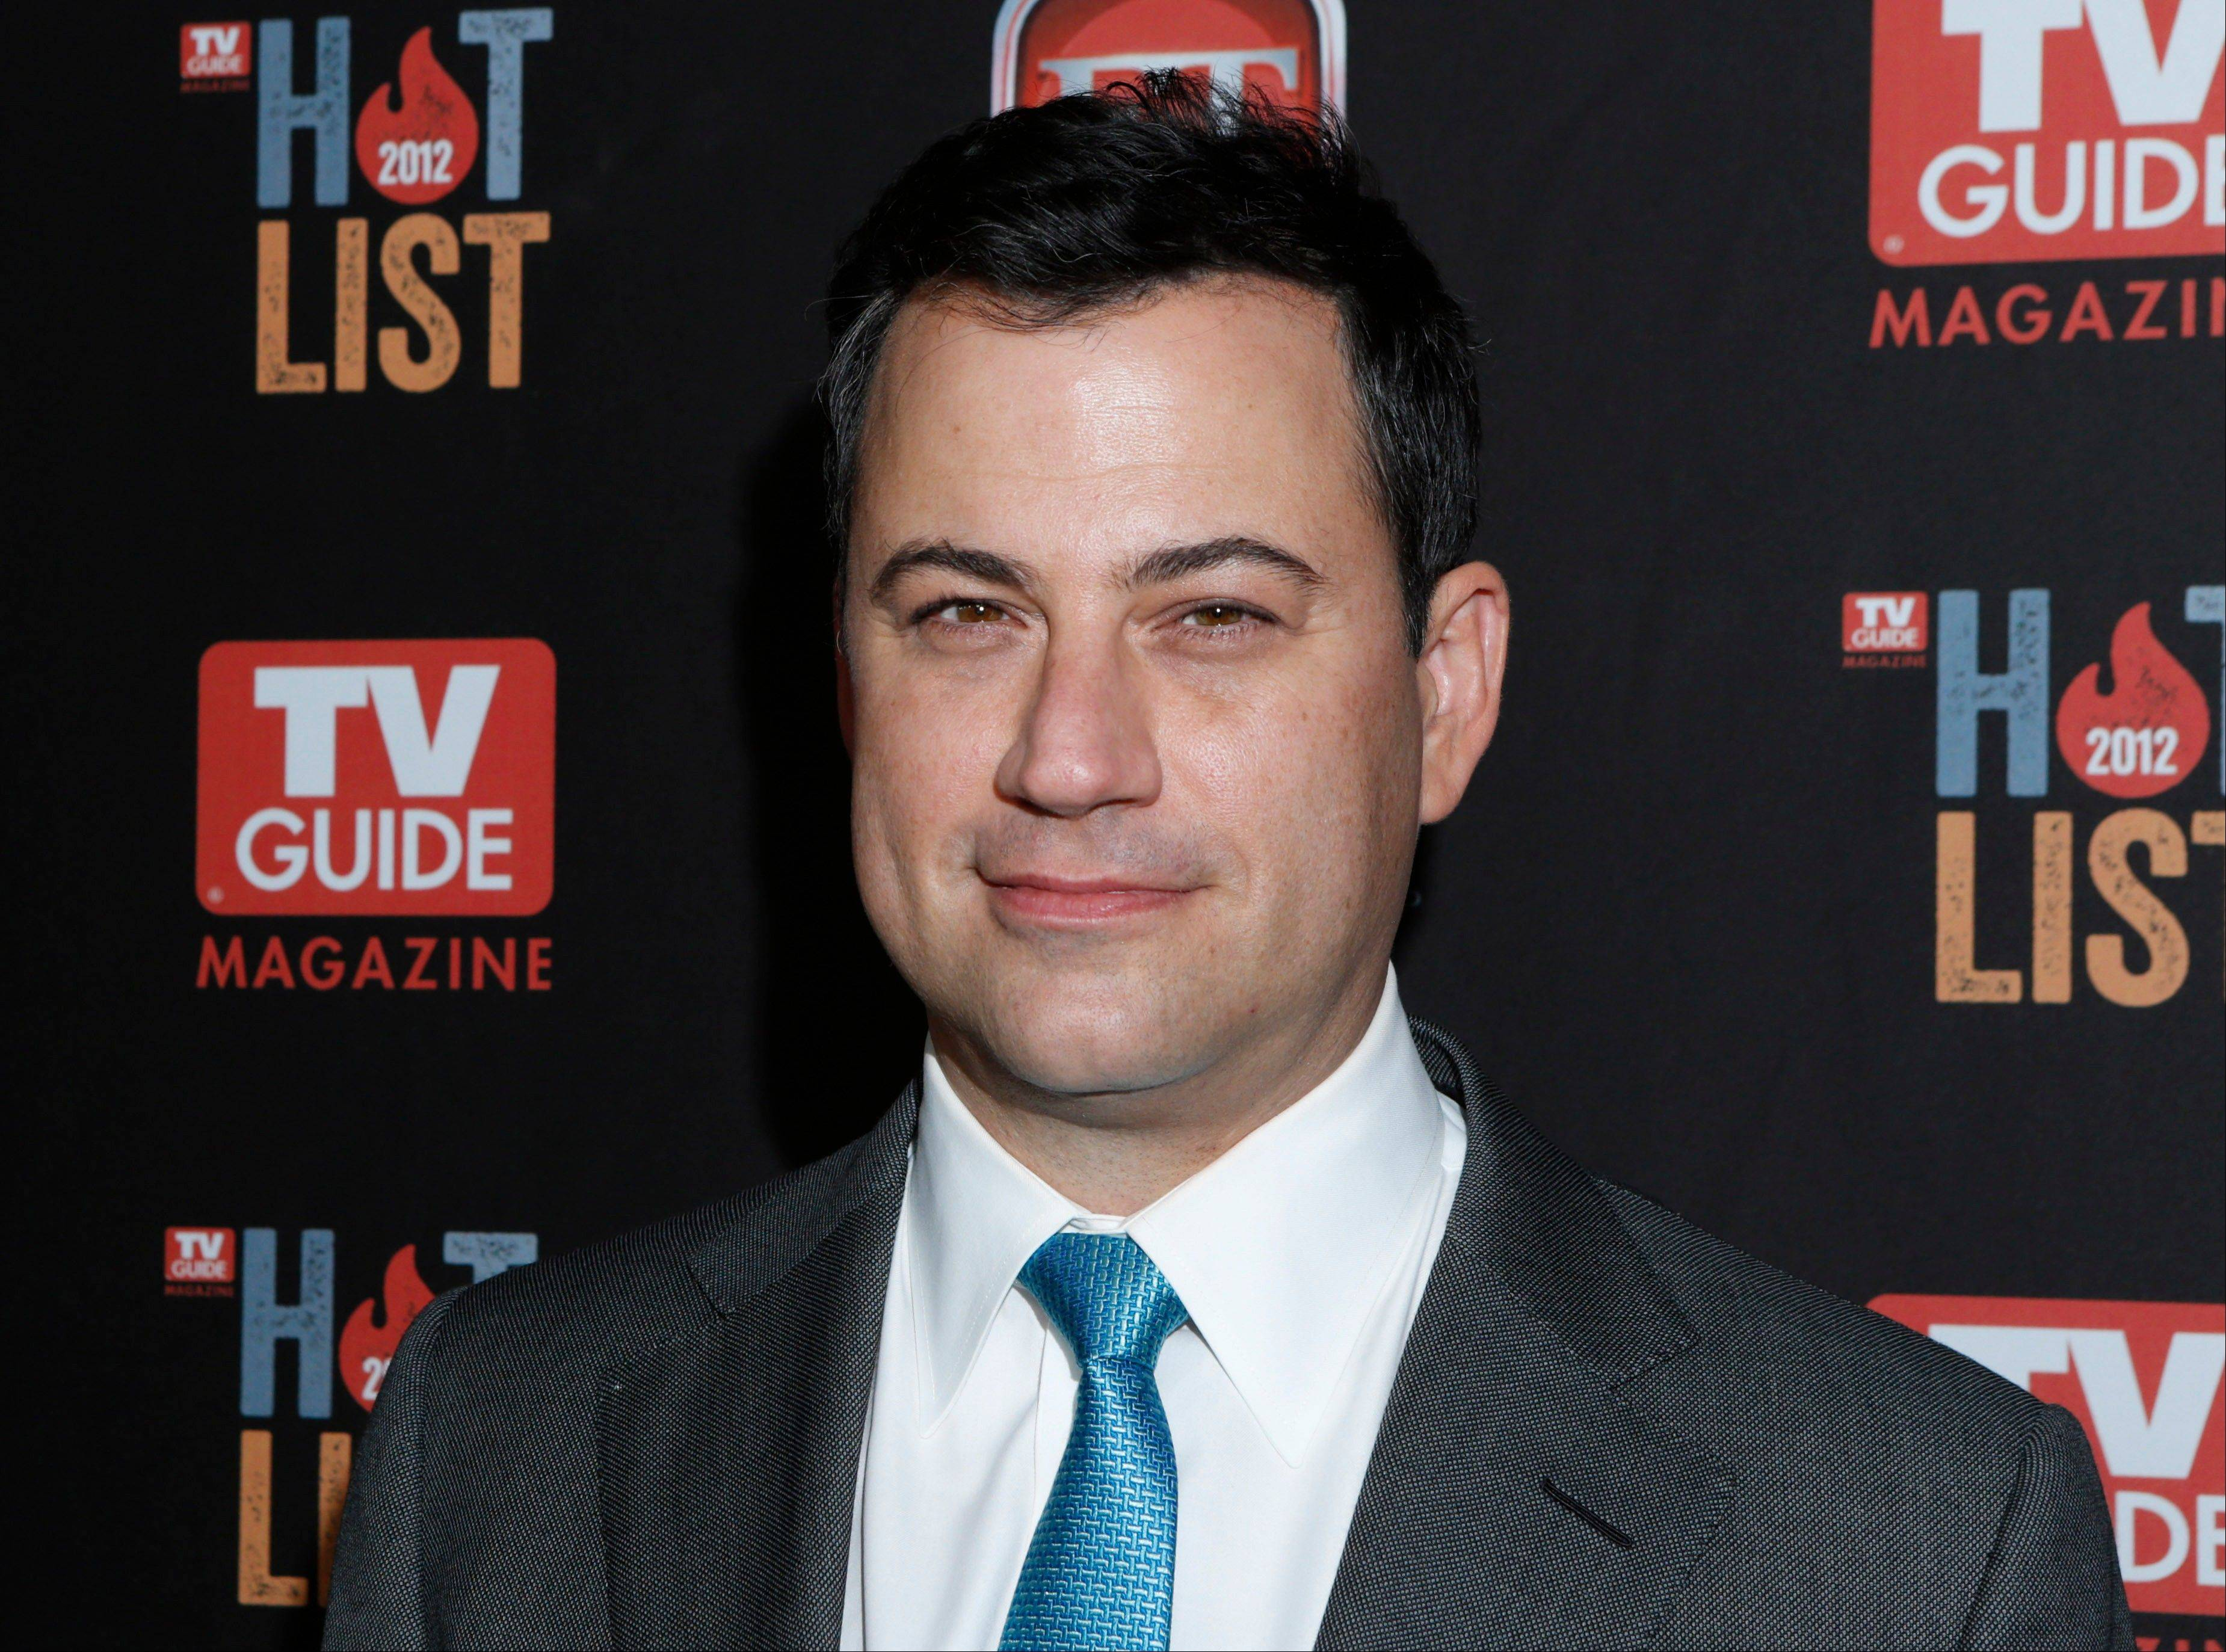 Jimmy Kimmel is moving to the heart of late-night on Tuesday to face Jay Leno and David Letterman.